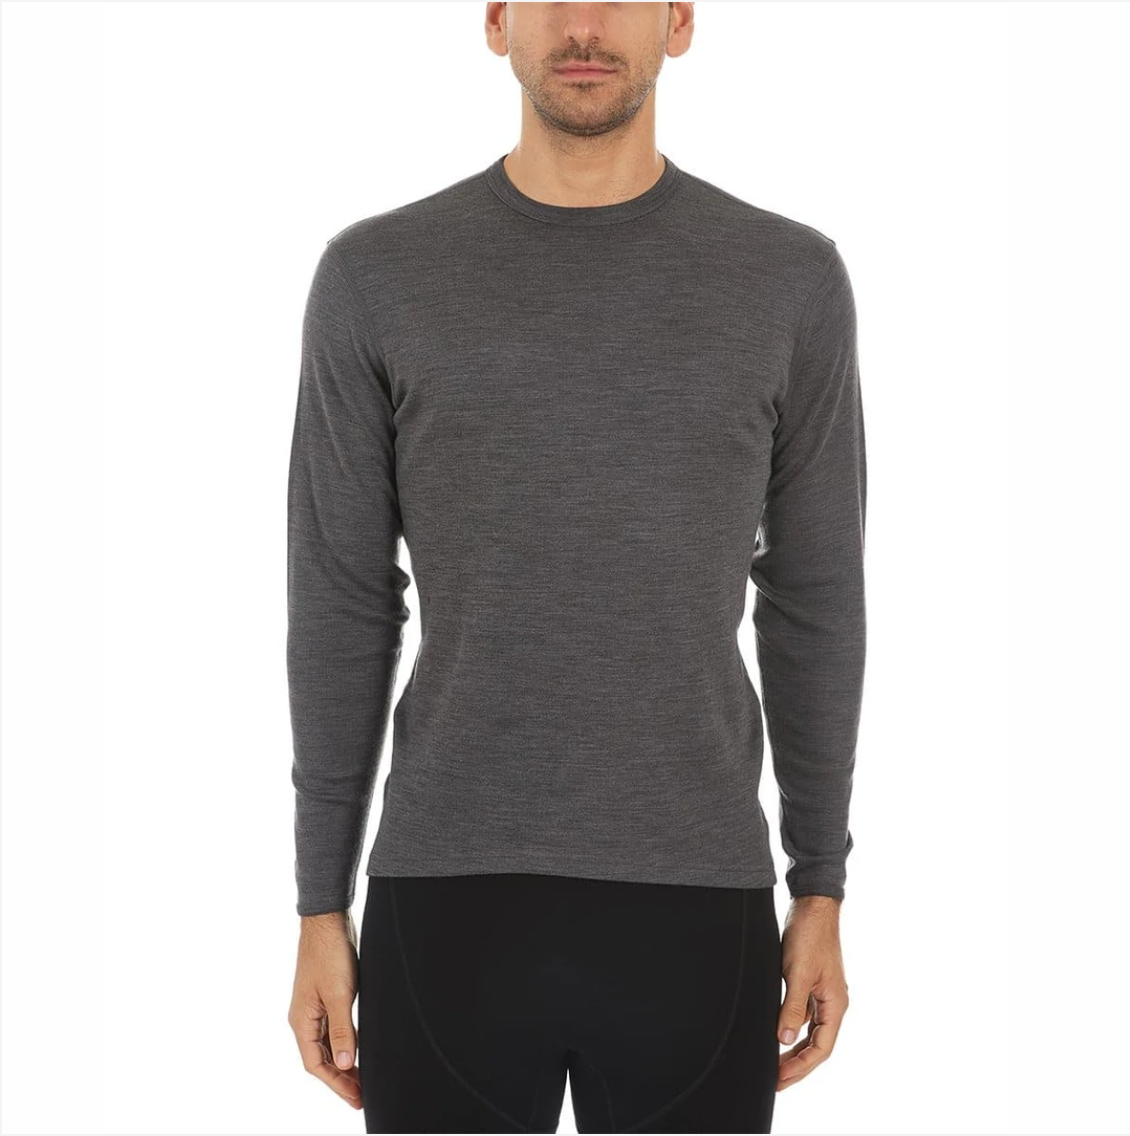 minus33 men's midweight wool crew in charcoal on model front view